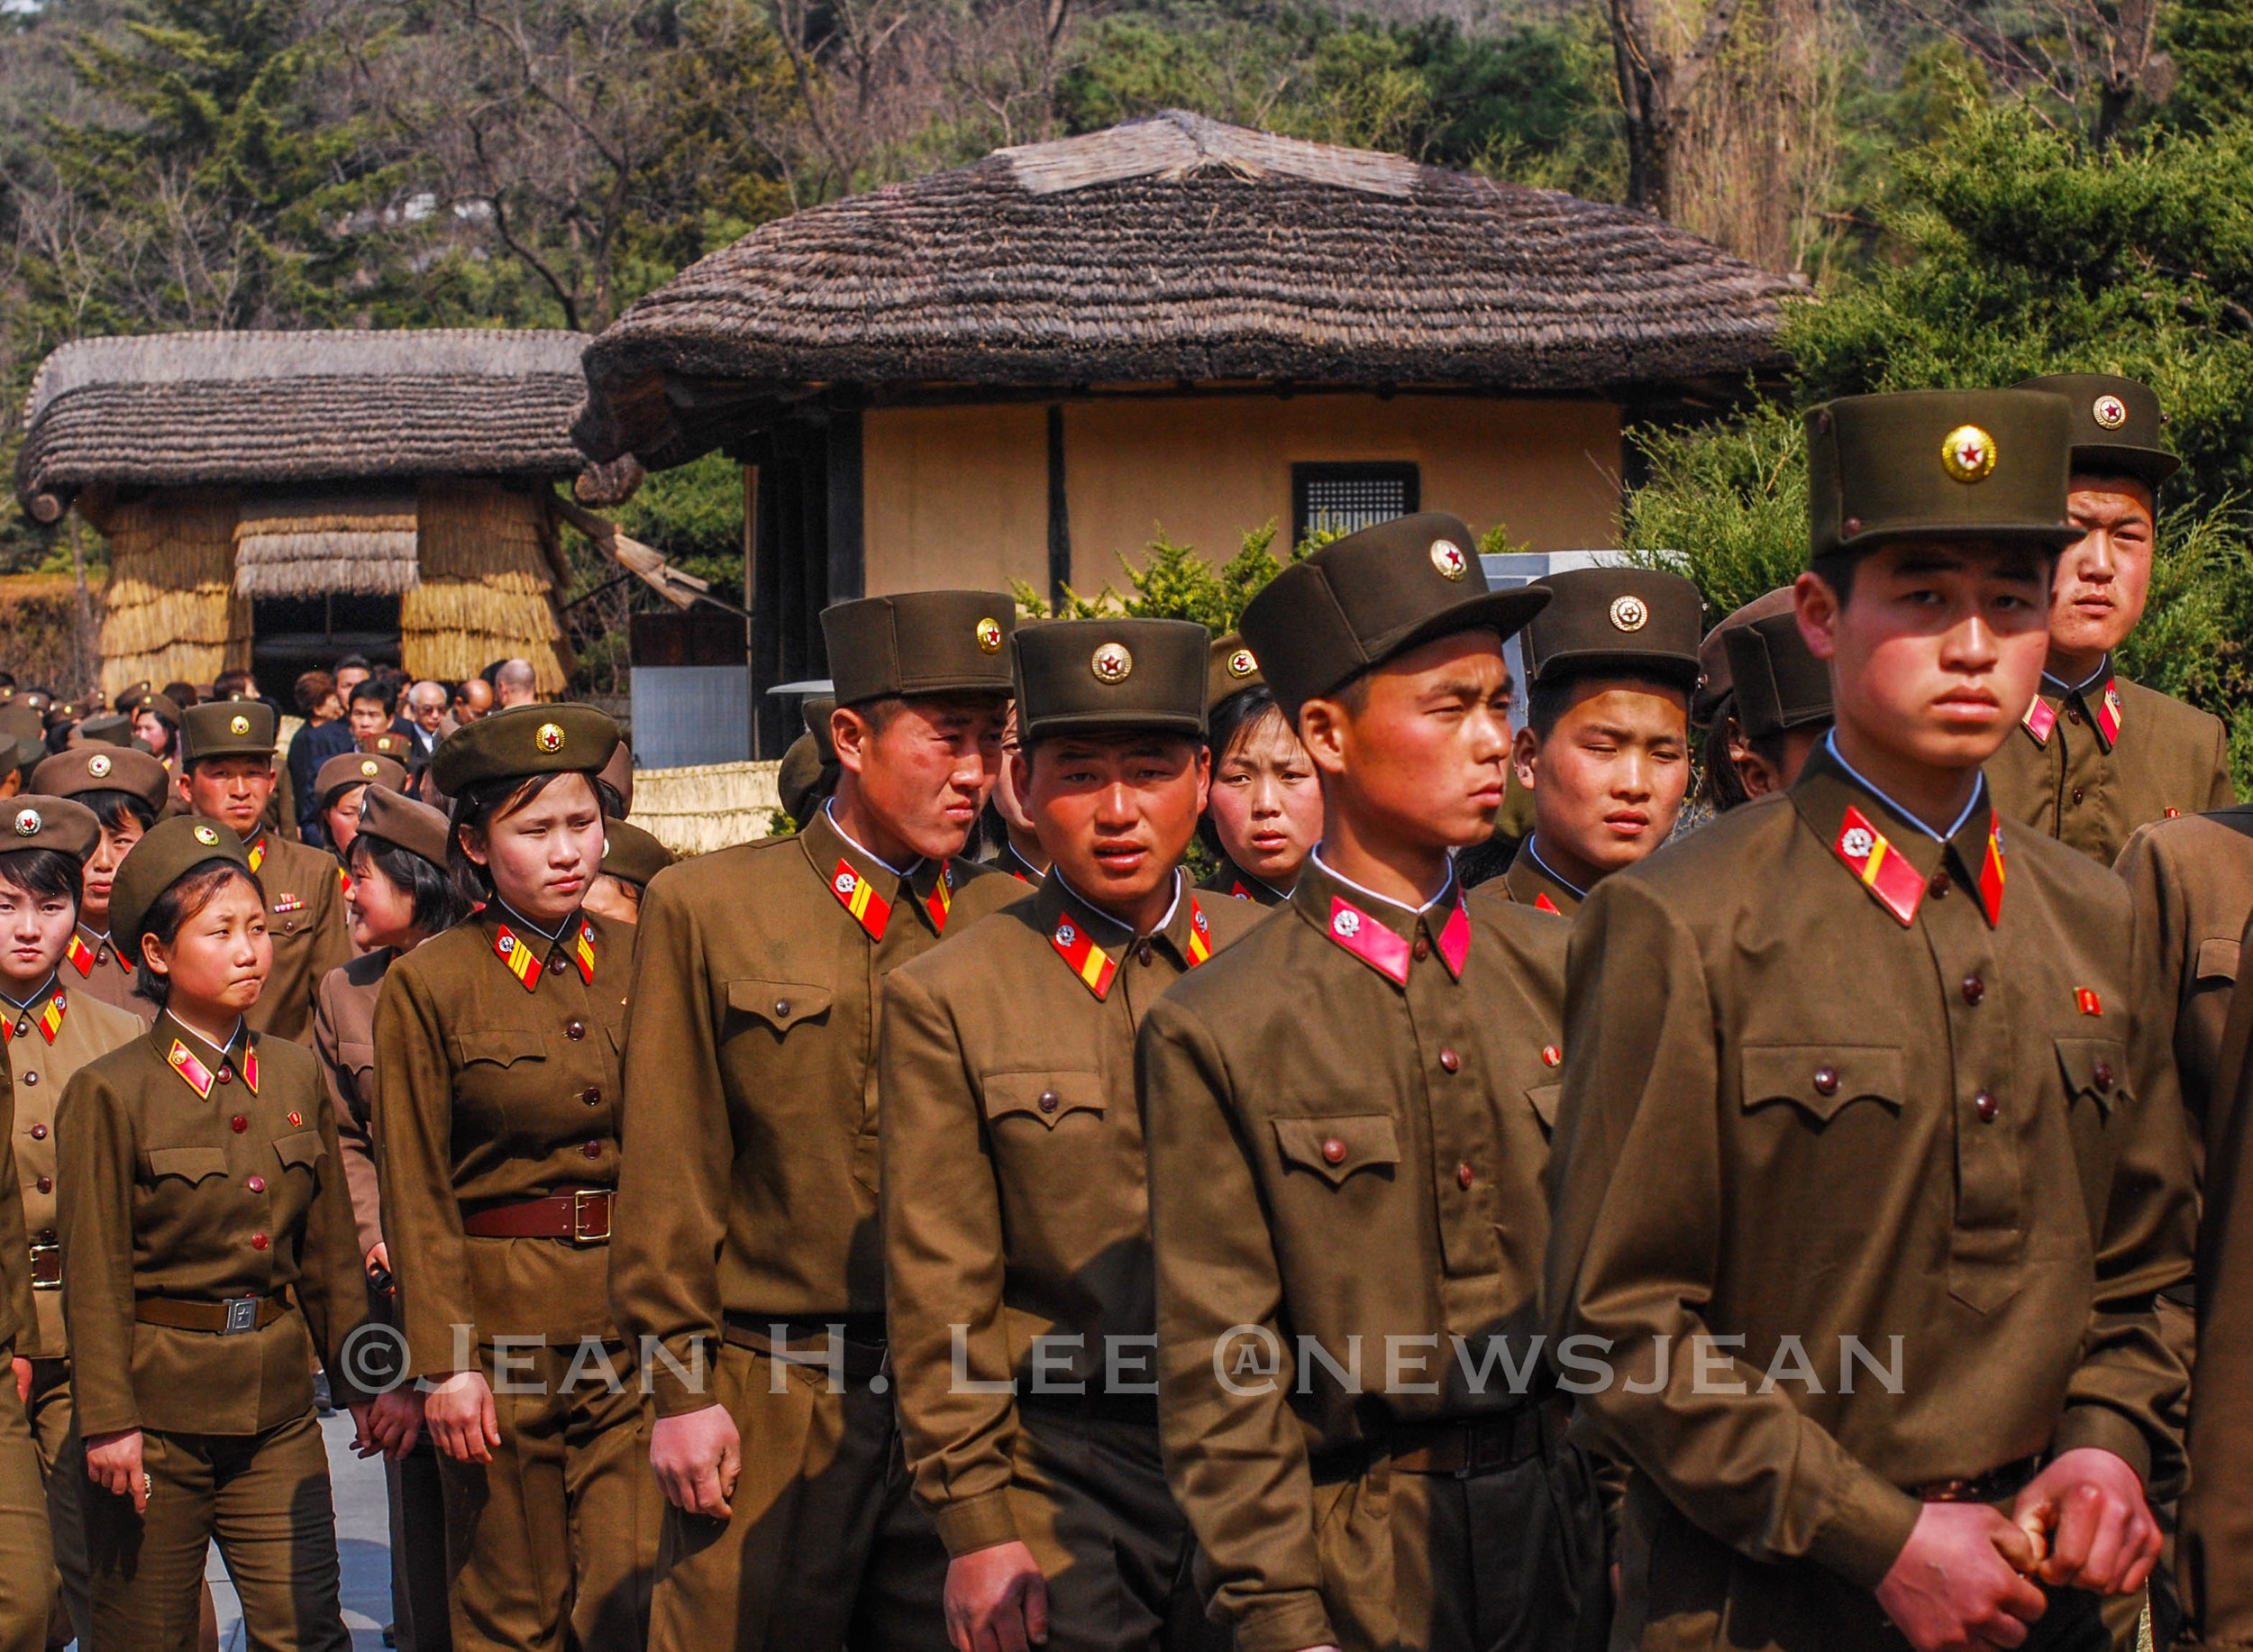 North Korean soldiers mark the birthday of late President Kim Il Sung by visiting his birthplace. Photo credit: Jean H. Lee. All Rights Reserved.